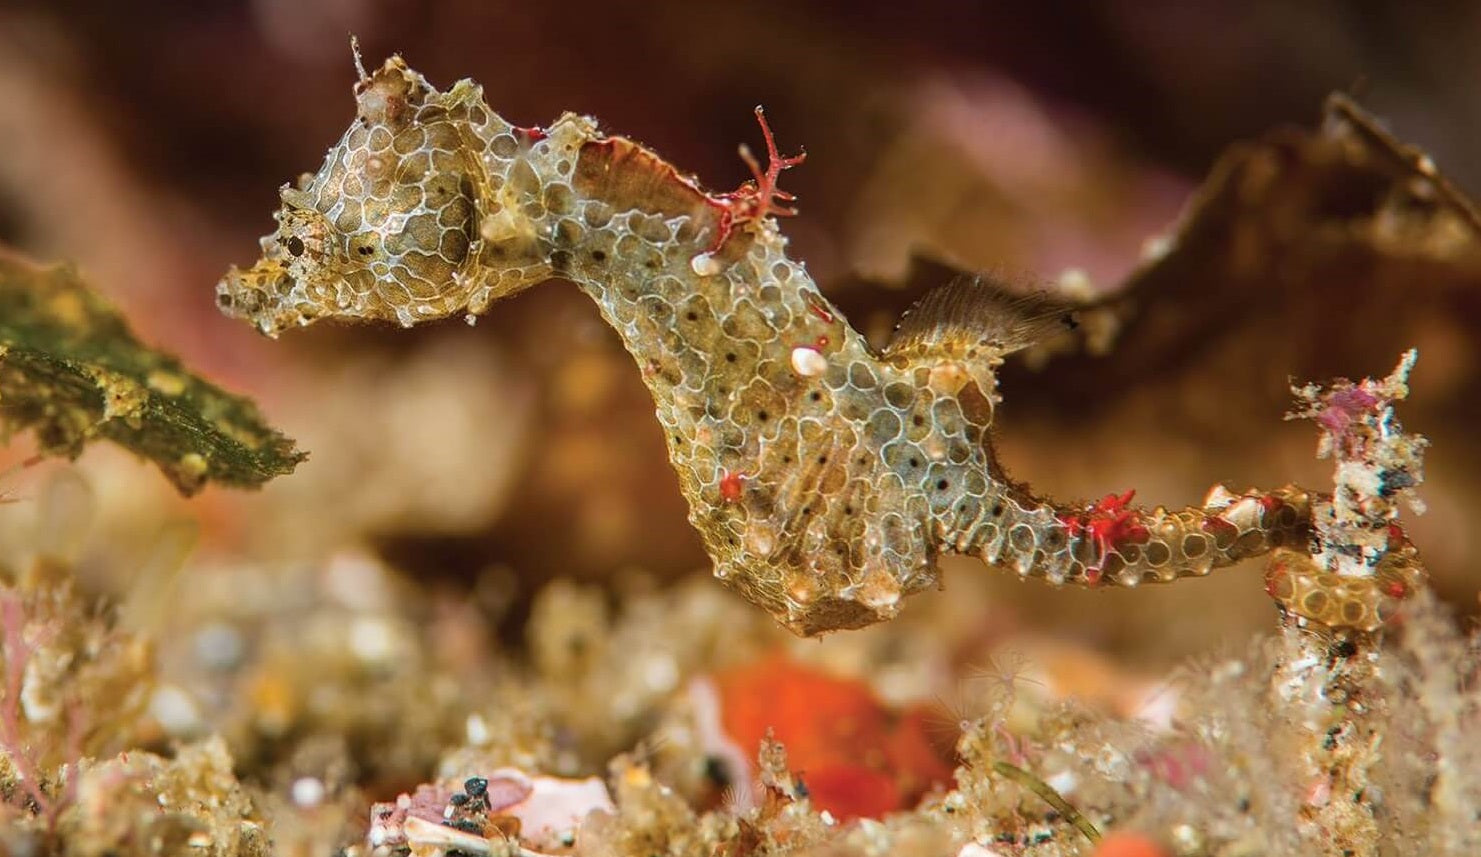 Newly Discovered Seahorse That's the Size of a Grain of Rice